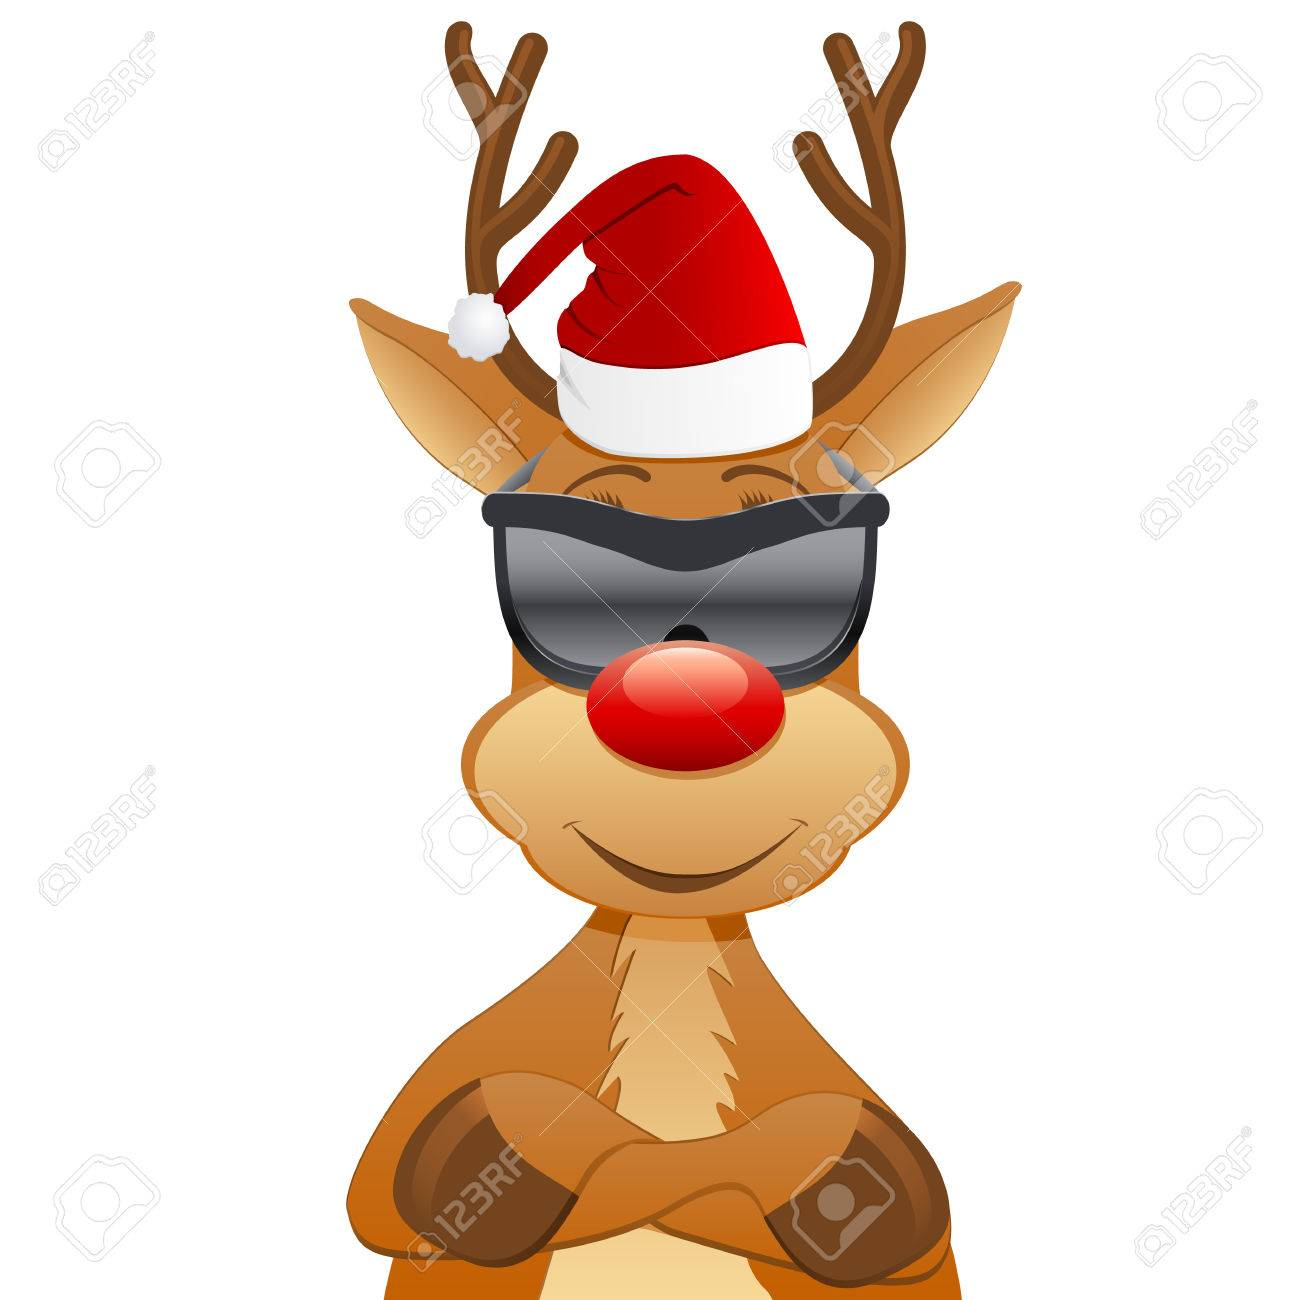 reindeer with Santa hat and sunglasses Stock Vector - 24184317